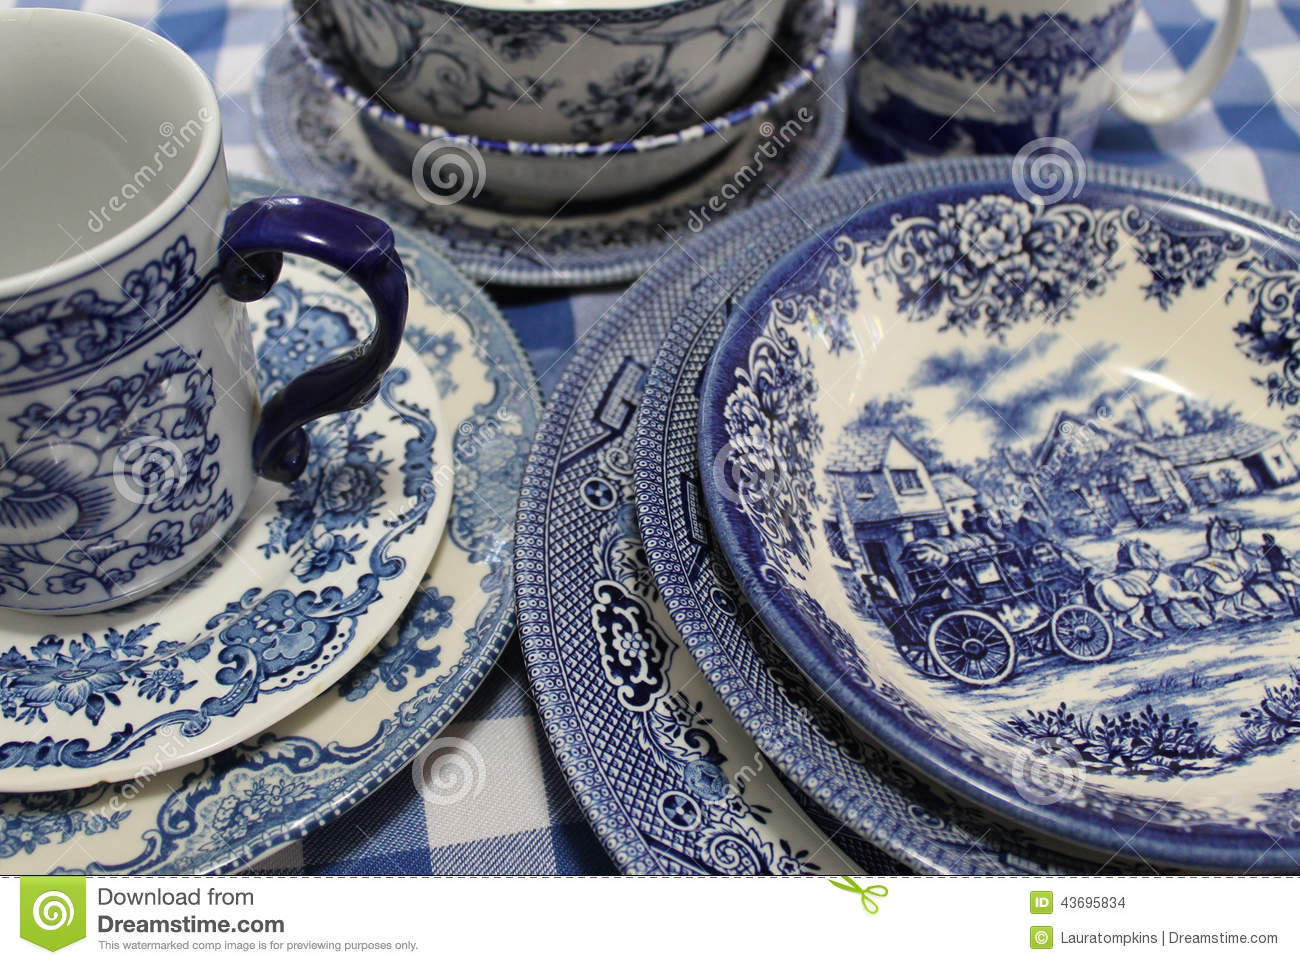 Blaues Geschirr Collection Of Blue And White China Dishes Stock Photo